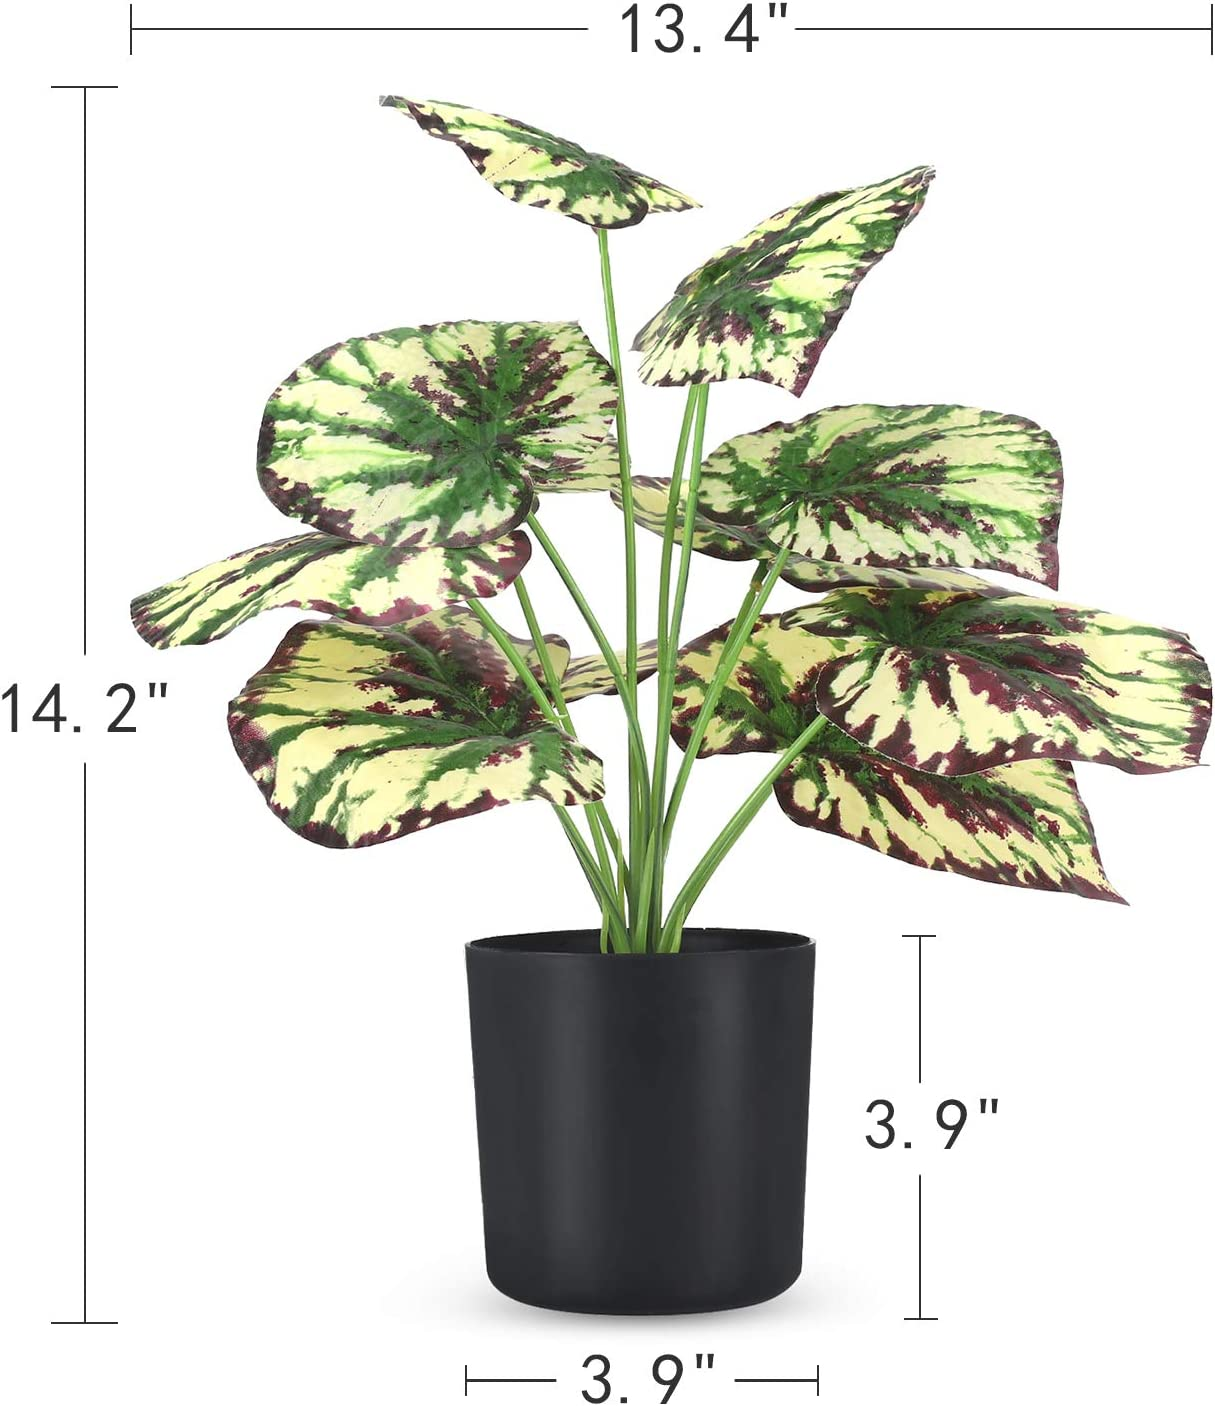 Amazon Com Fake Potted Plants 15 Large Artificial Plants For Home Office Decor Faux Potted Plants Used For Desk Top Decor Purple Begonia Furniture Decor